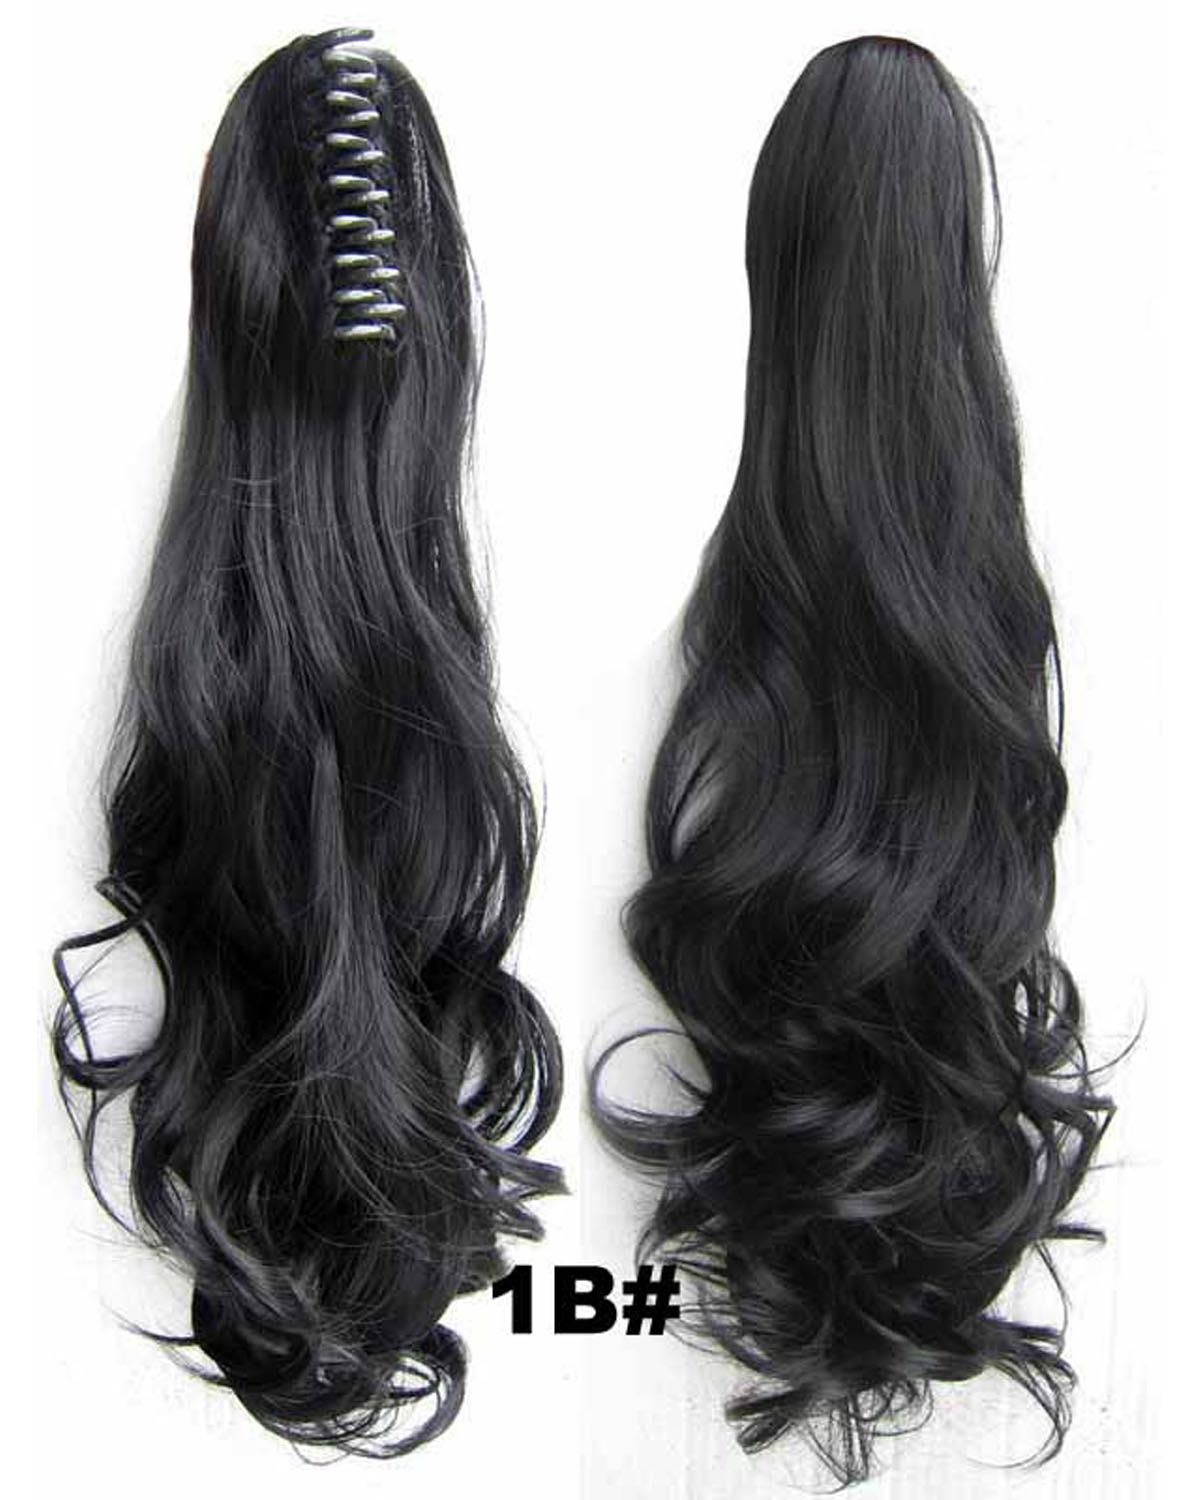 22 Inch Lady Popular Body Wave Curly and Long Claw Chip Synthetic Hair Ponytail 1B#